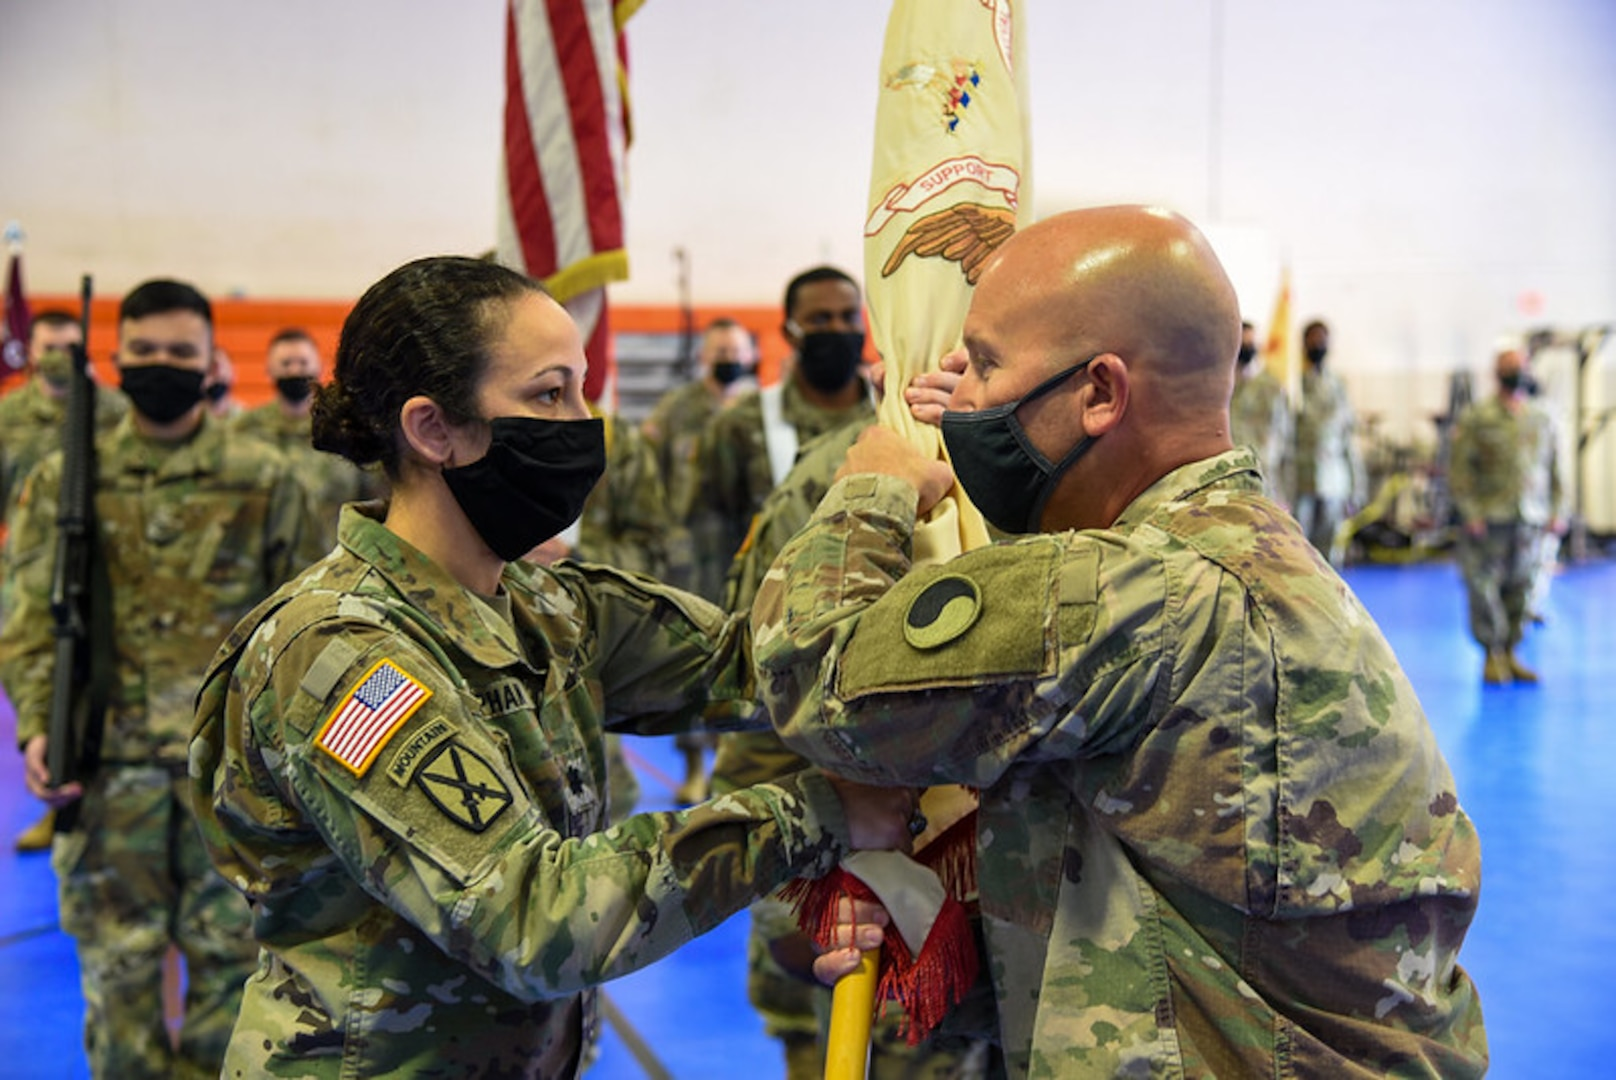 Lt. Col. Alyssa Y. Astphan takes command of the Danville-based 429th Brigade Support Battalion, 116th Infantry Brigade Combat Team from Lt. Col. Edwin R. Bochtler during a change of command ceremony Nov. 14, 2020, in Danville, Virginia. Col. Christopher J. Samulski, 116th IBCT commander, presided over the ceremony and the exchange of unit colors which signified the transfer of command from Bochtler to Astphan. (U.S. Army National Guard photo by Sgt. 1st Class Terra C. Gatti)